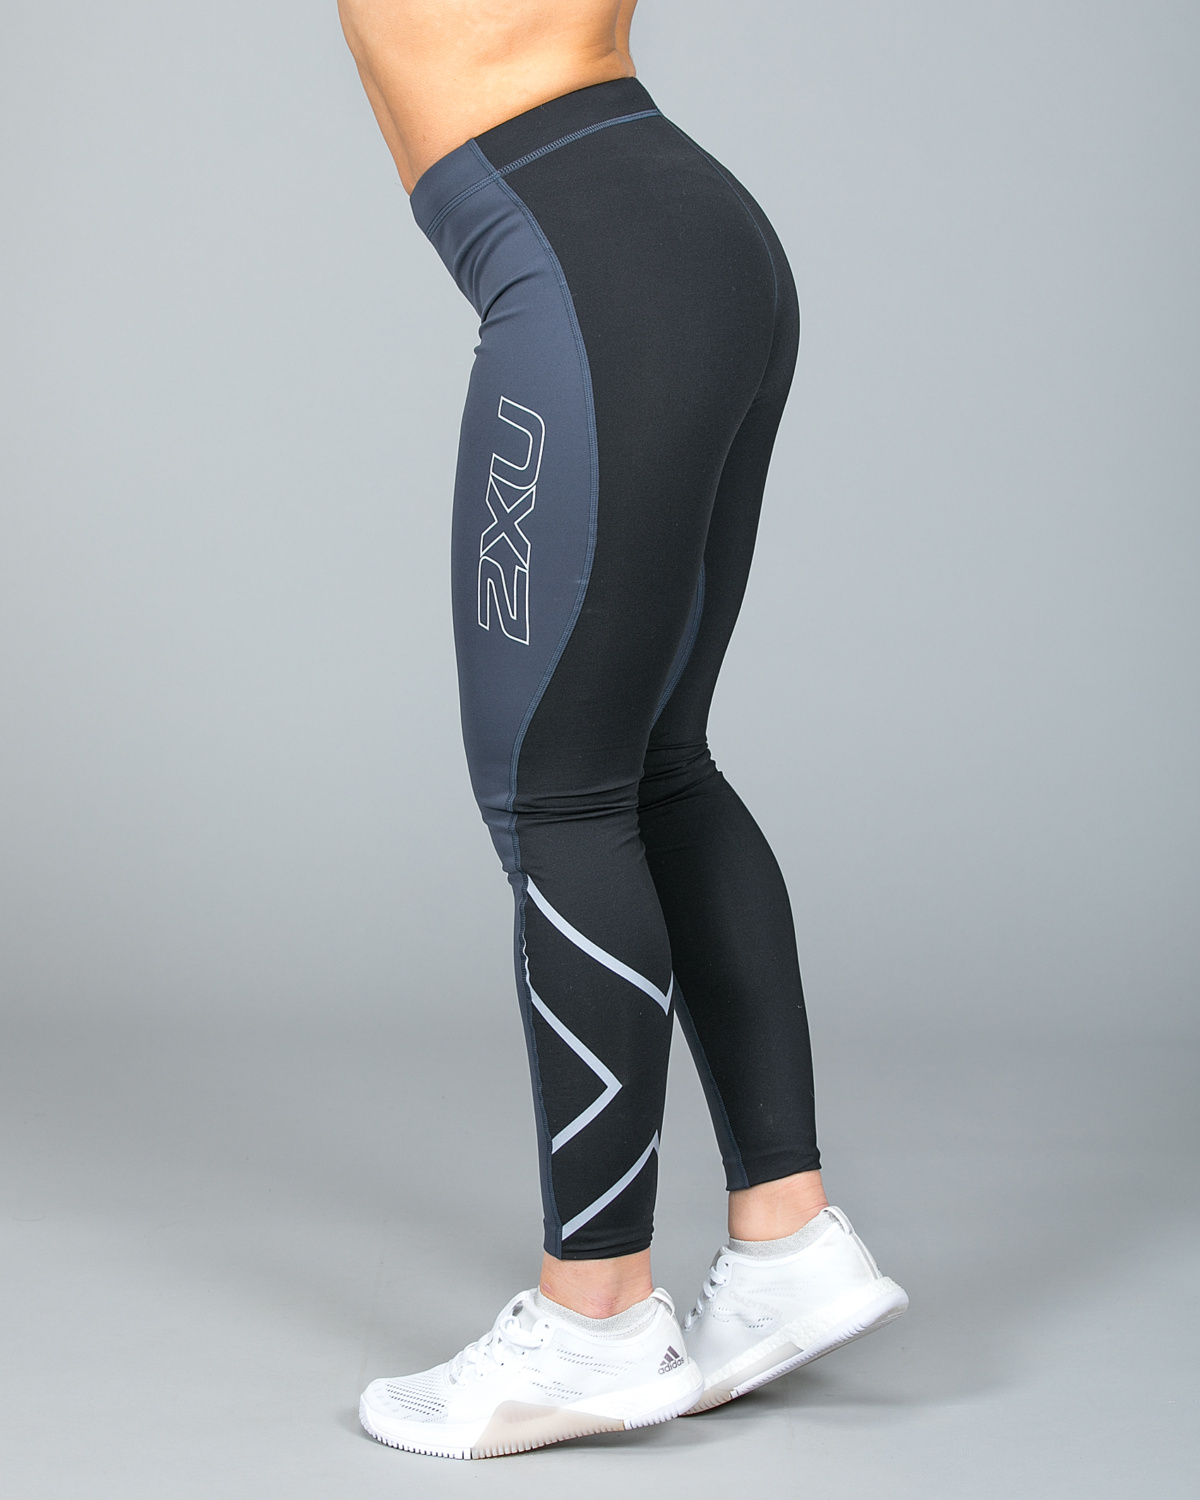 45dbbd84 ... 2XU Wind Defence Thermal Compression Tights Dame Steel Black. _W2A6620